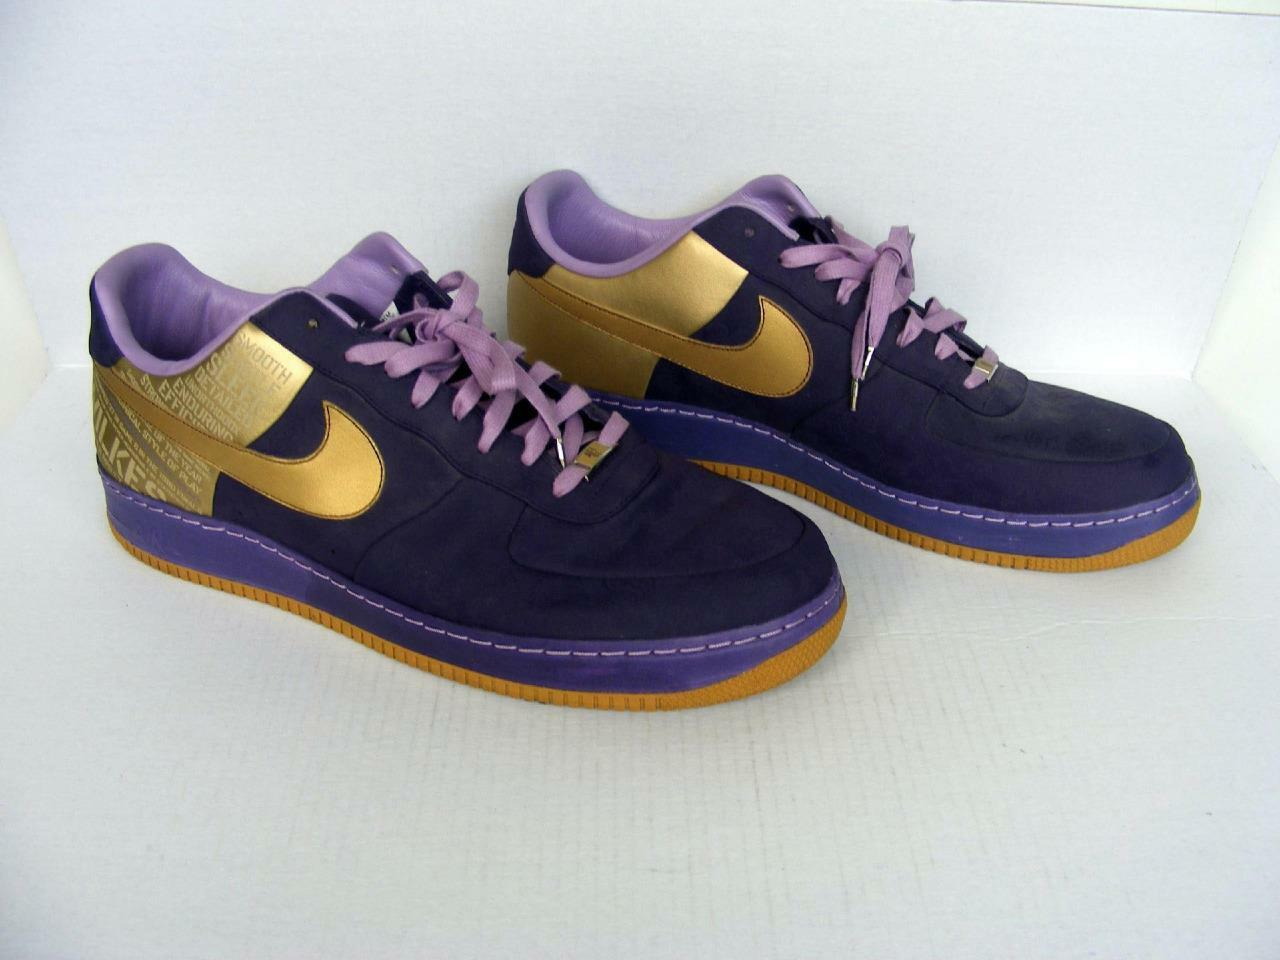 Nike Wilkes Scarpe 18 AF-1 Supreme Air Jordan Lakers Purple Gold Original Six '07